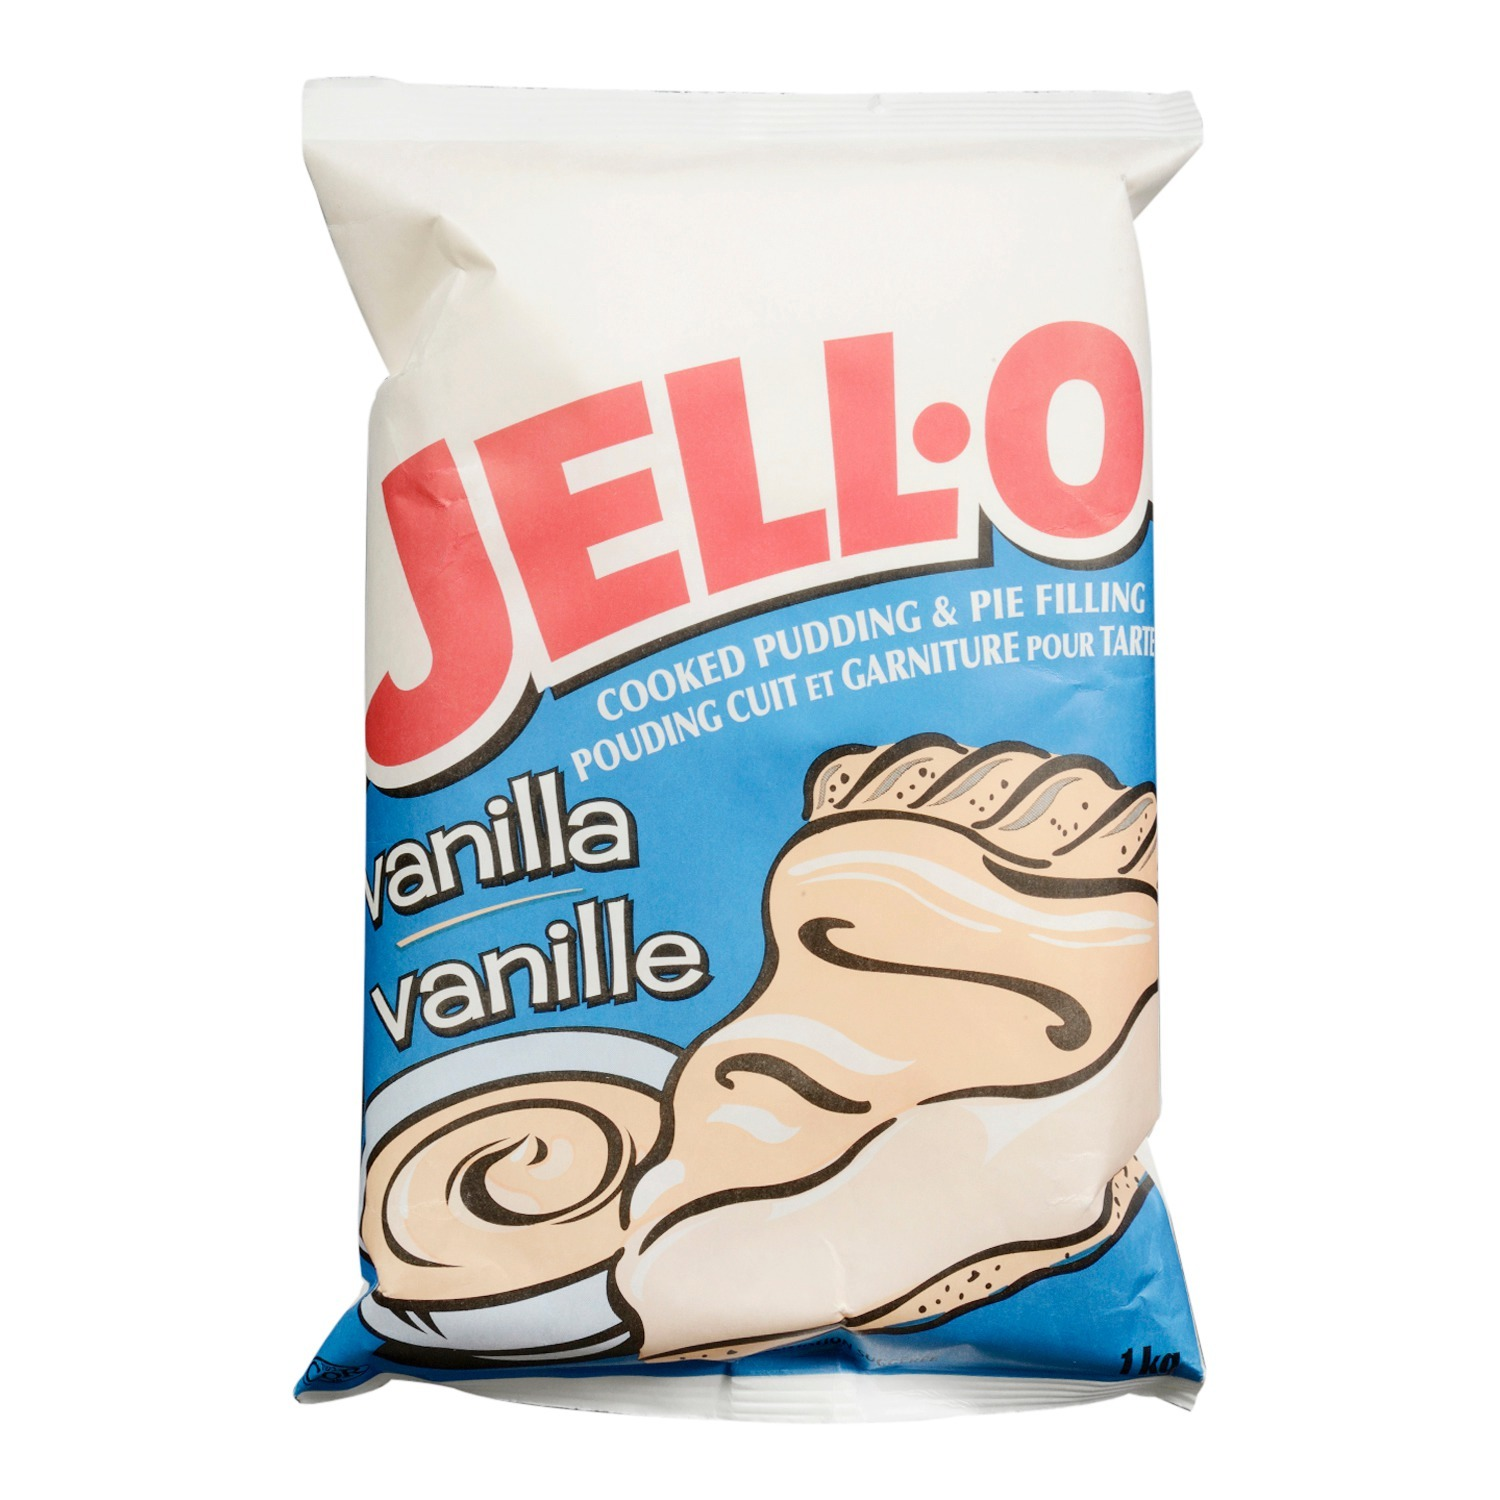 JELL-O Pudding and Pie Filling Vanilla 1kg 2